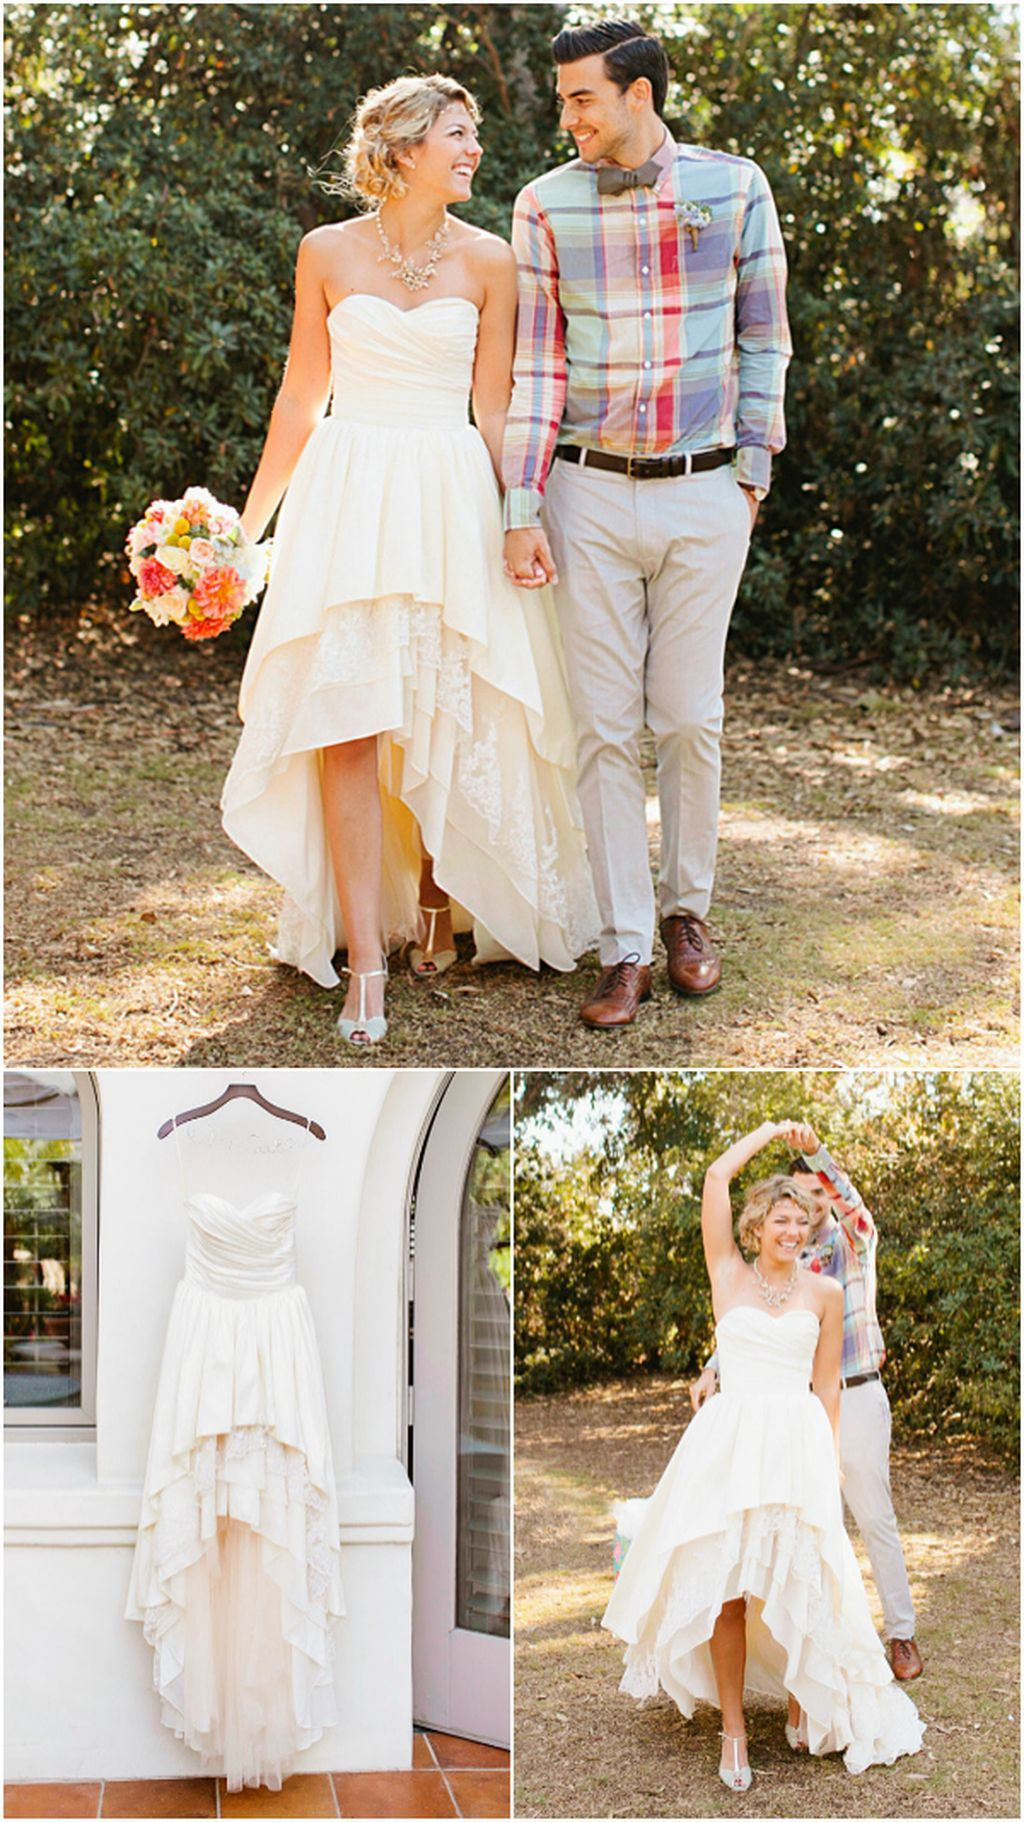 1970s wedding dress   Best Charming Wedding Dress for Outdoor Party  Outdoor parties